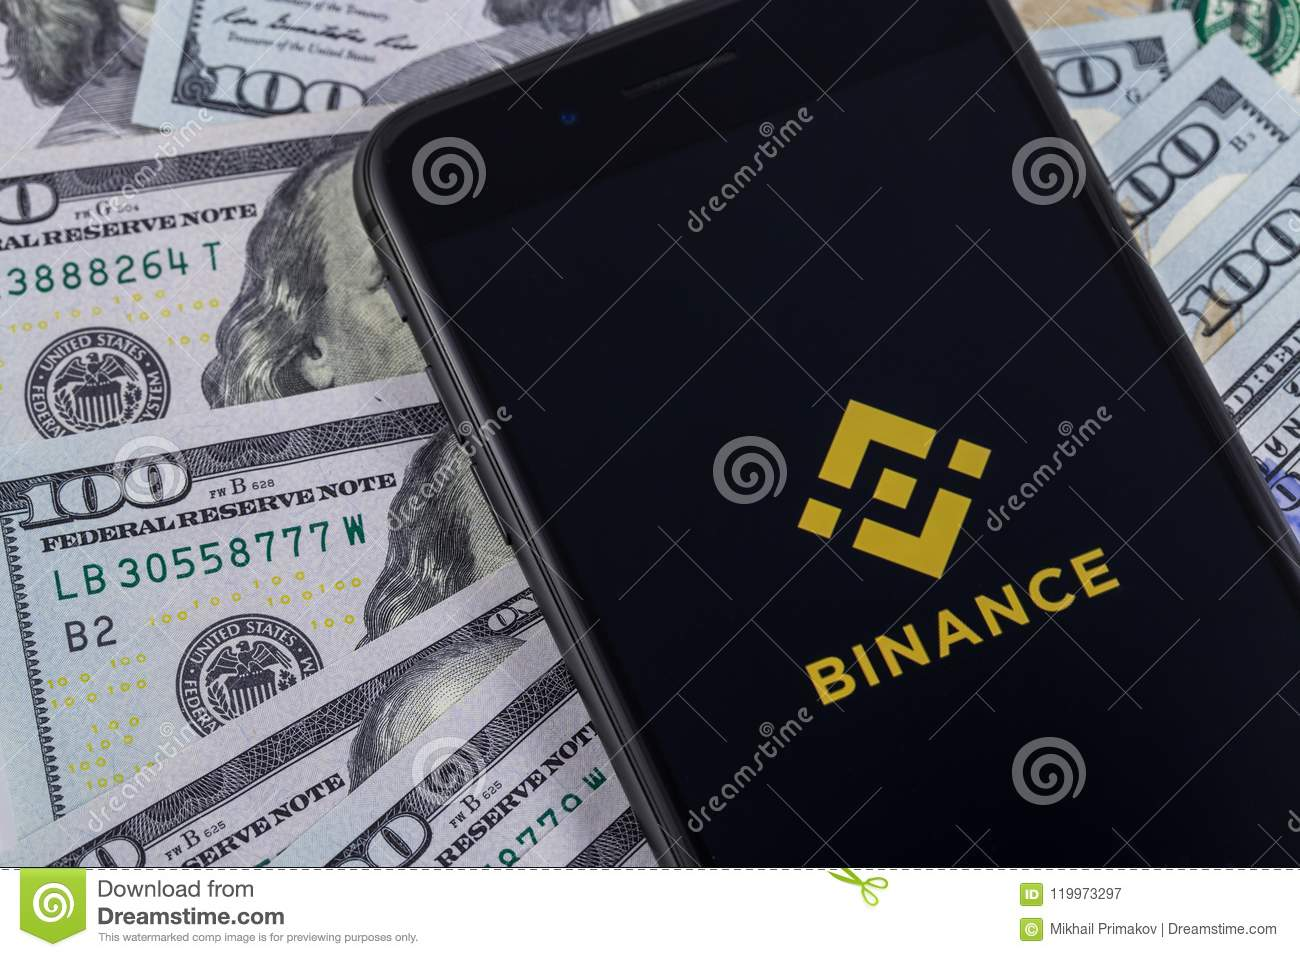 Apple-iPhone en Binance-embleem, en dollars Binance is een cryptoc